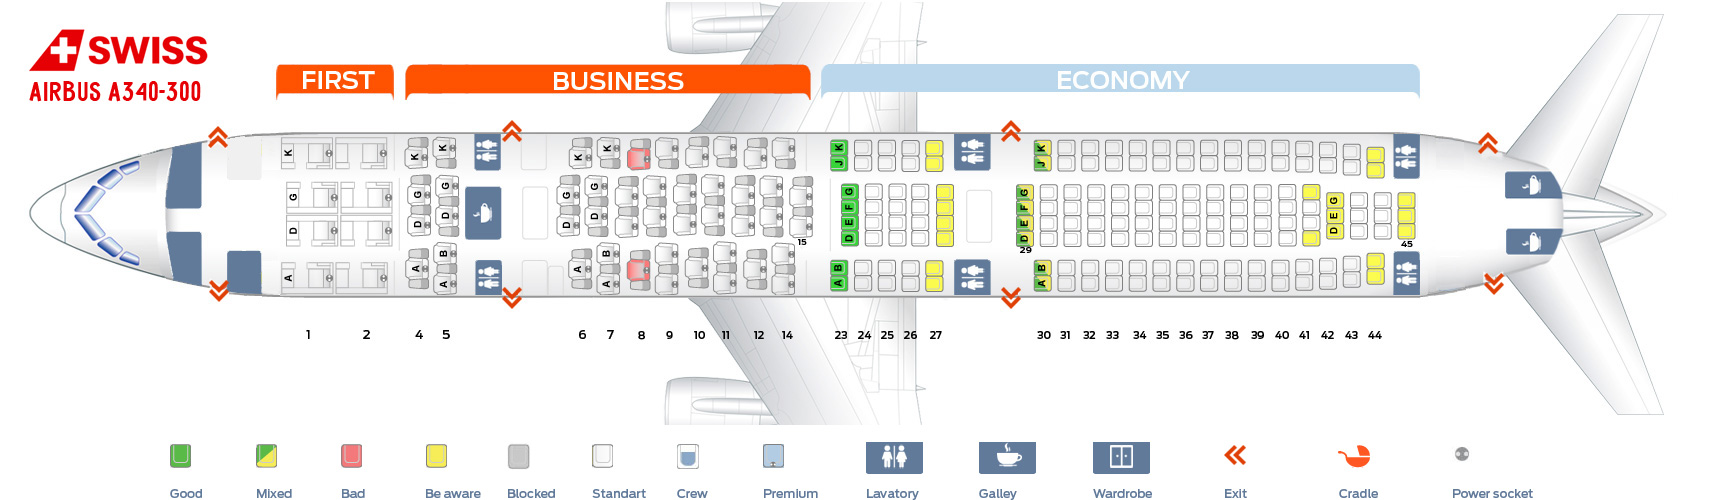 Swiss Airlines Seat Map Airbus A340-300